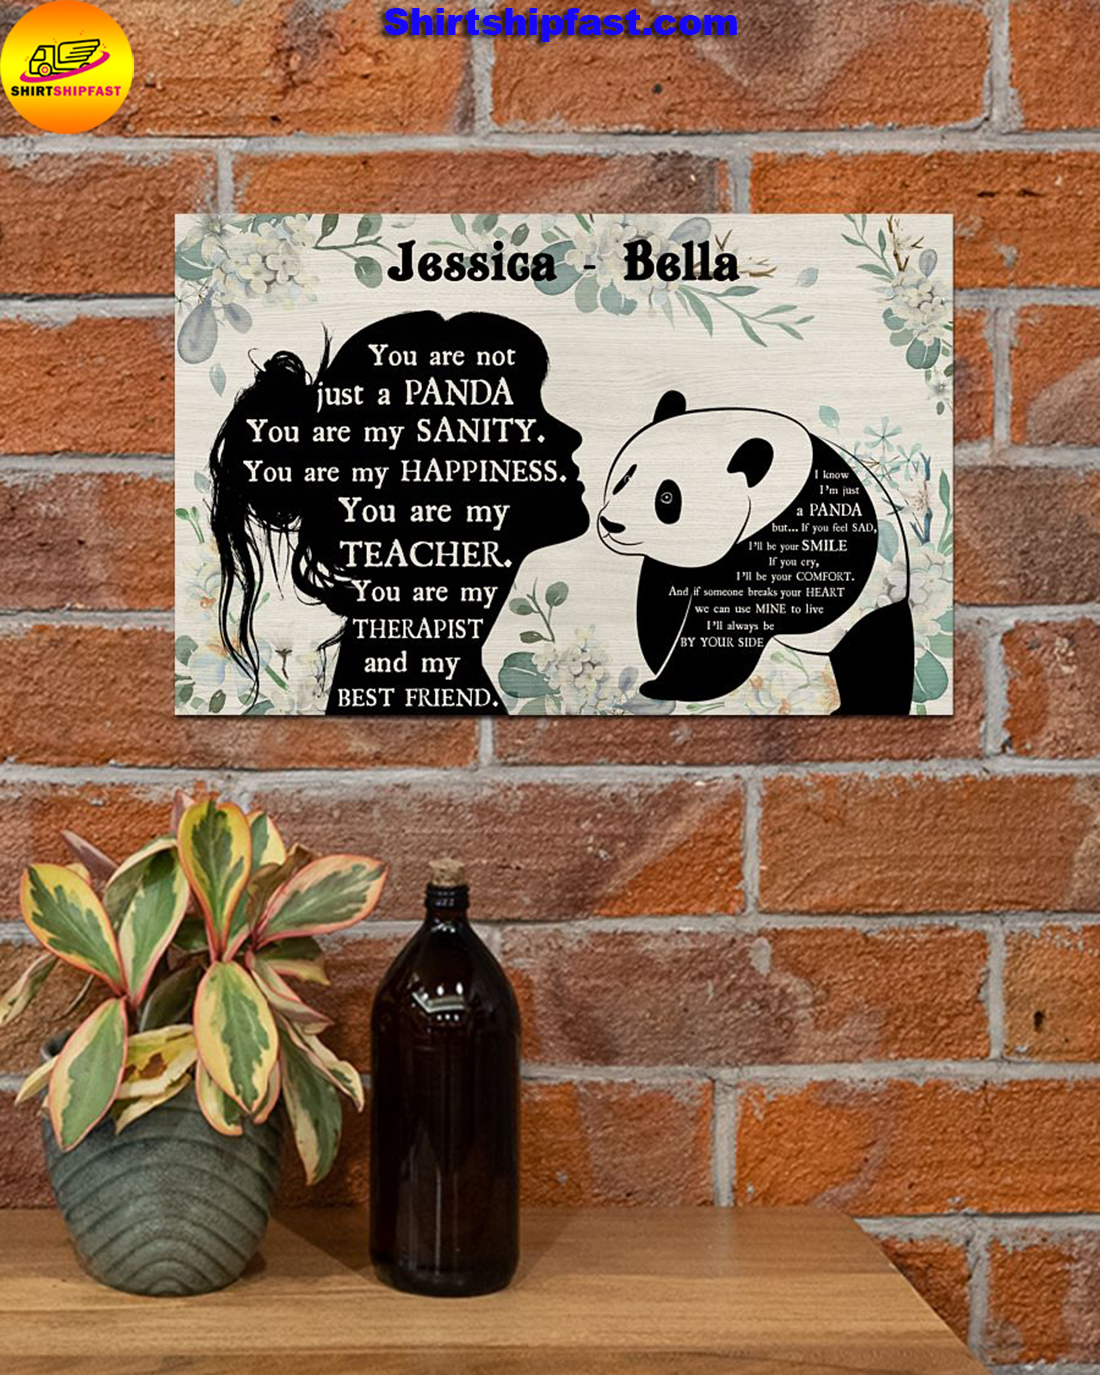 You are not just a panda personalized panda lover poster - Picture 2